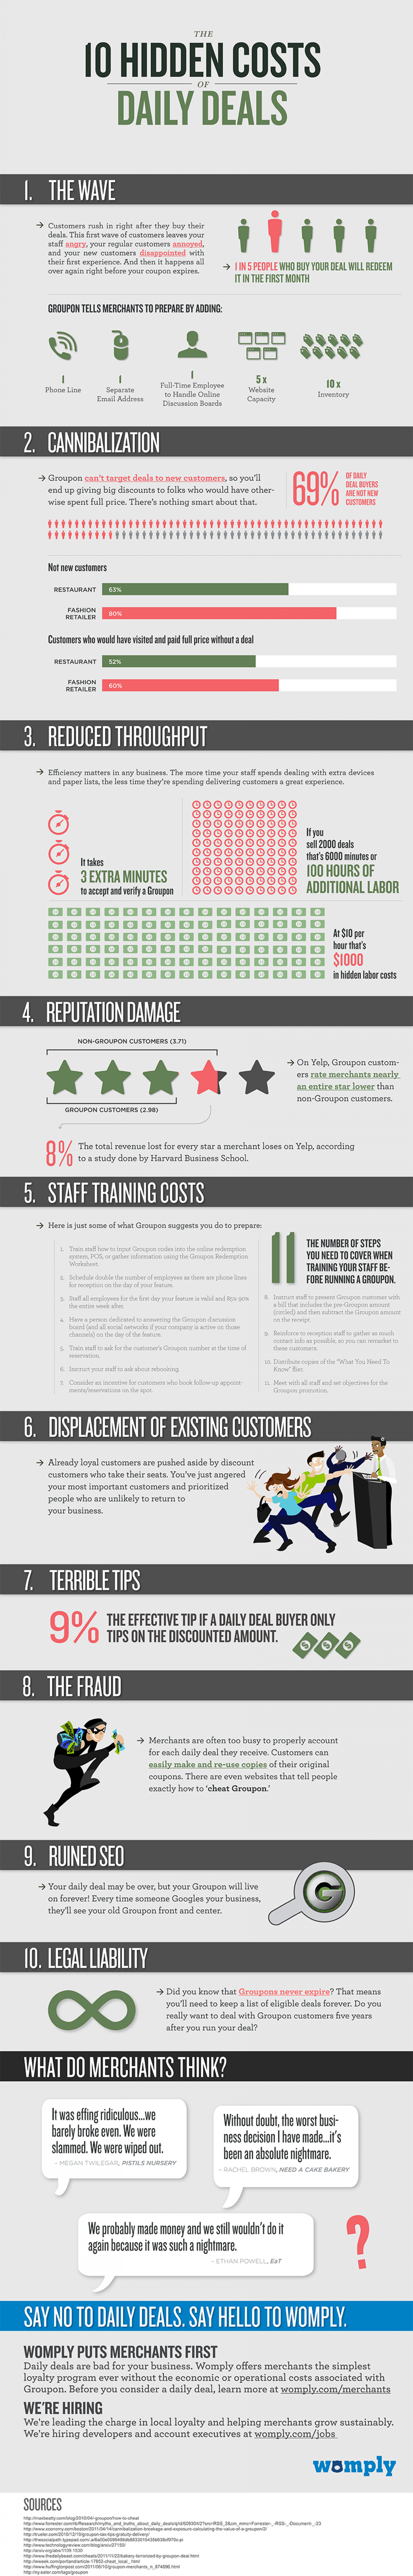 The 10 Hidden Costs of Daily Deals Infographic